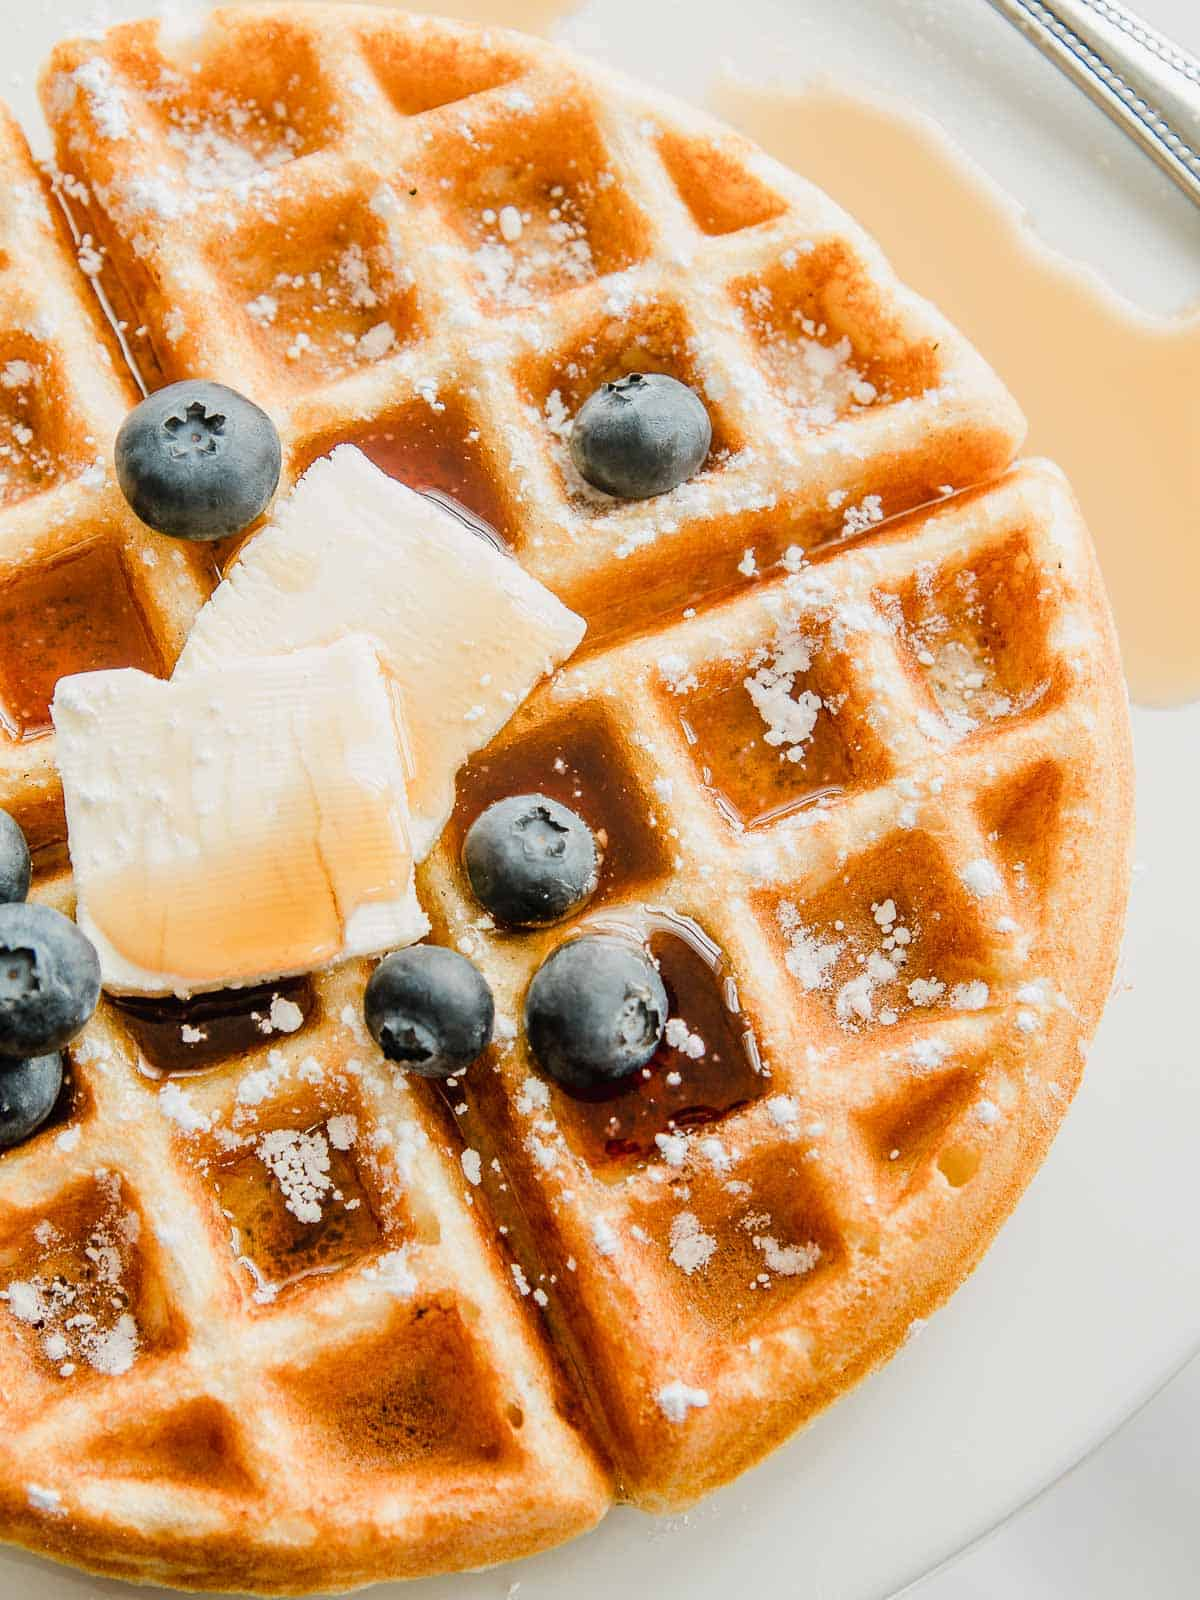 Gluten free waffles with butter and blueberries.